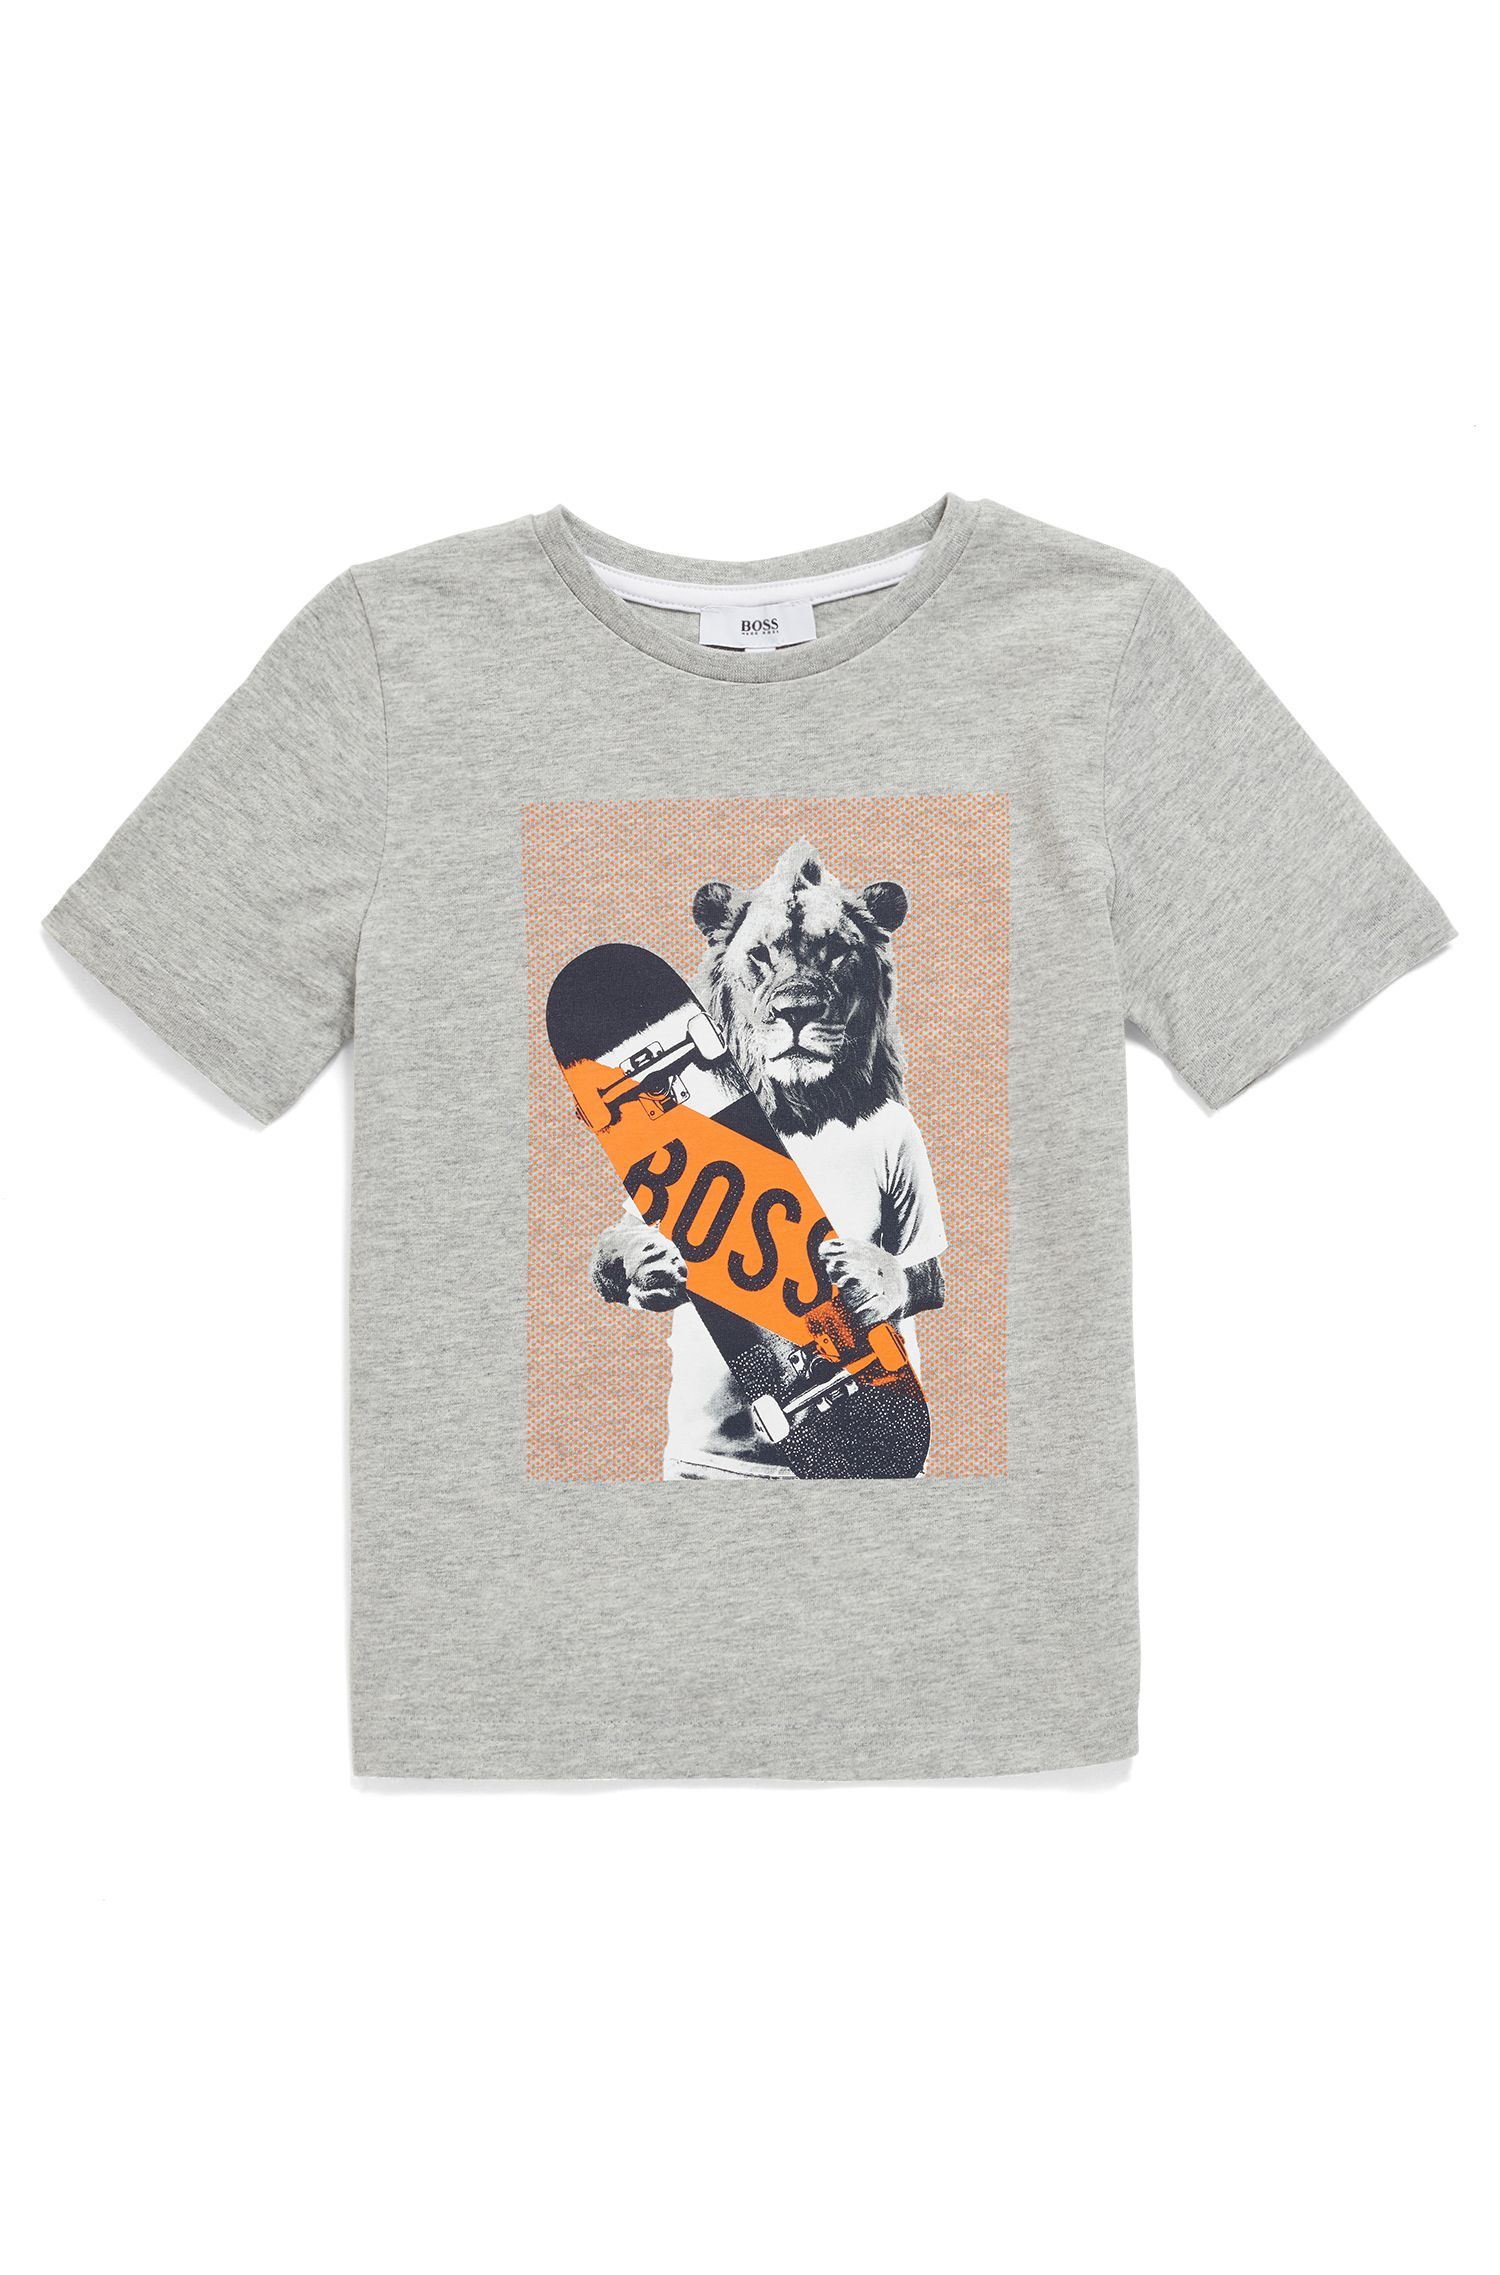 Kids' T-shirt in pure cotton with animal artwork, Patterned